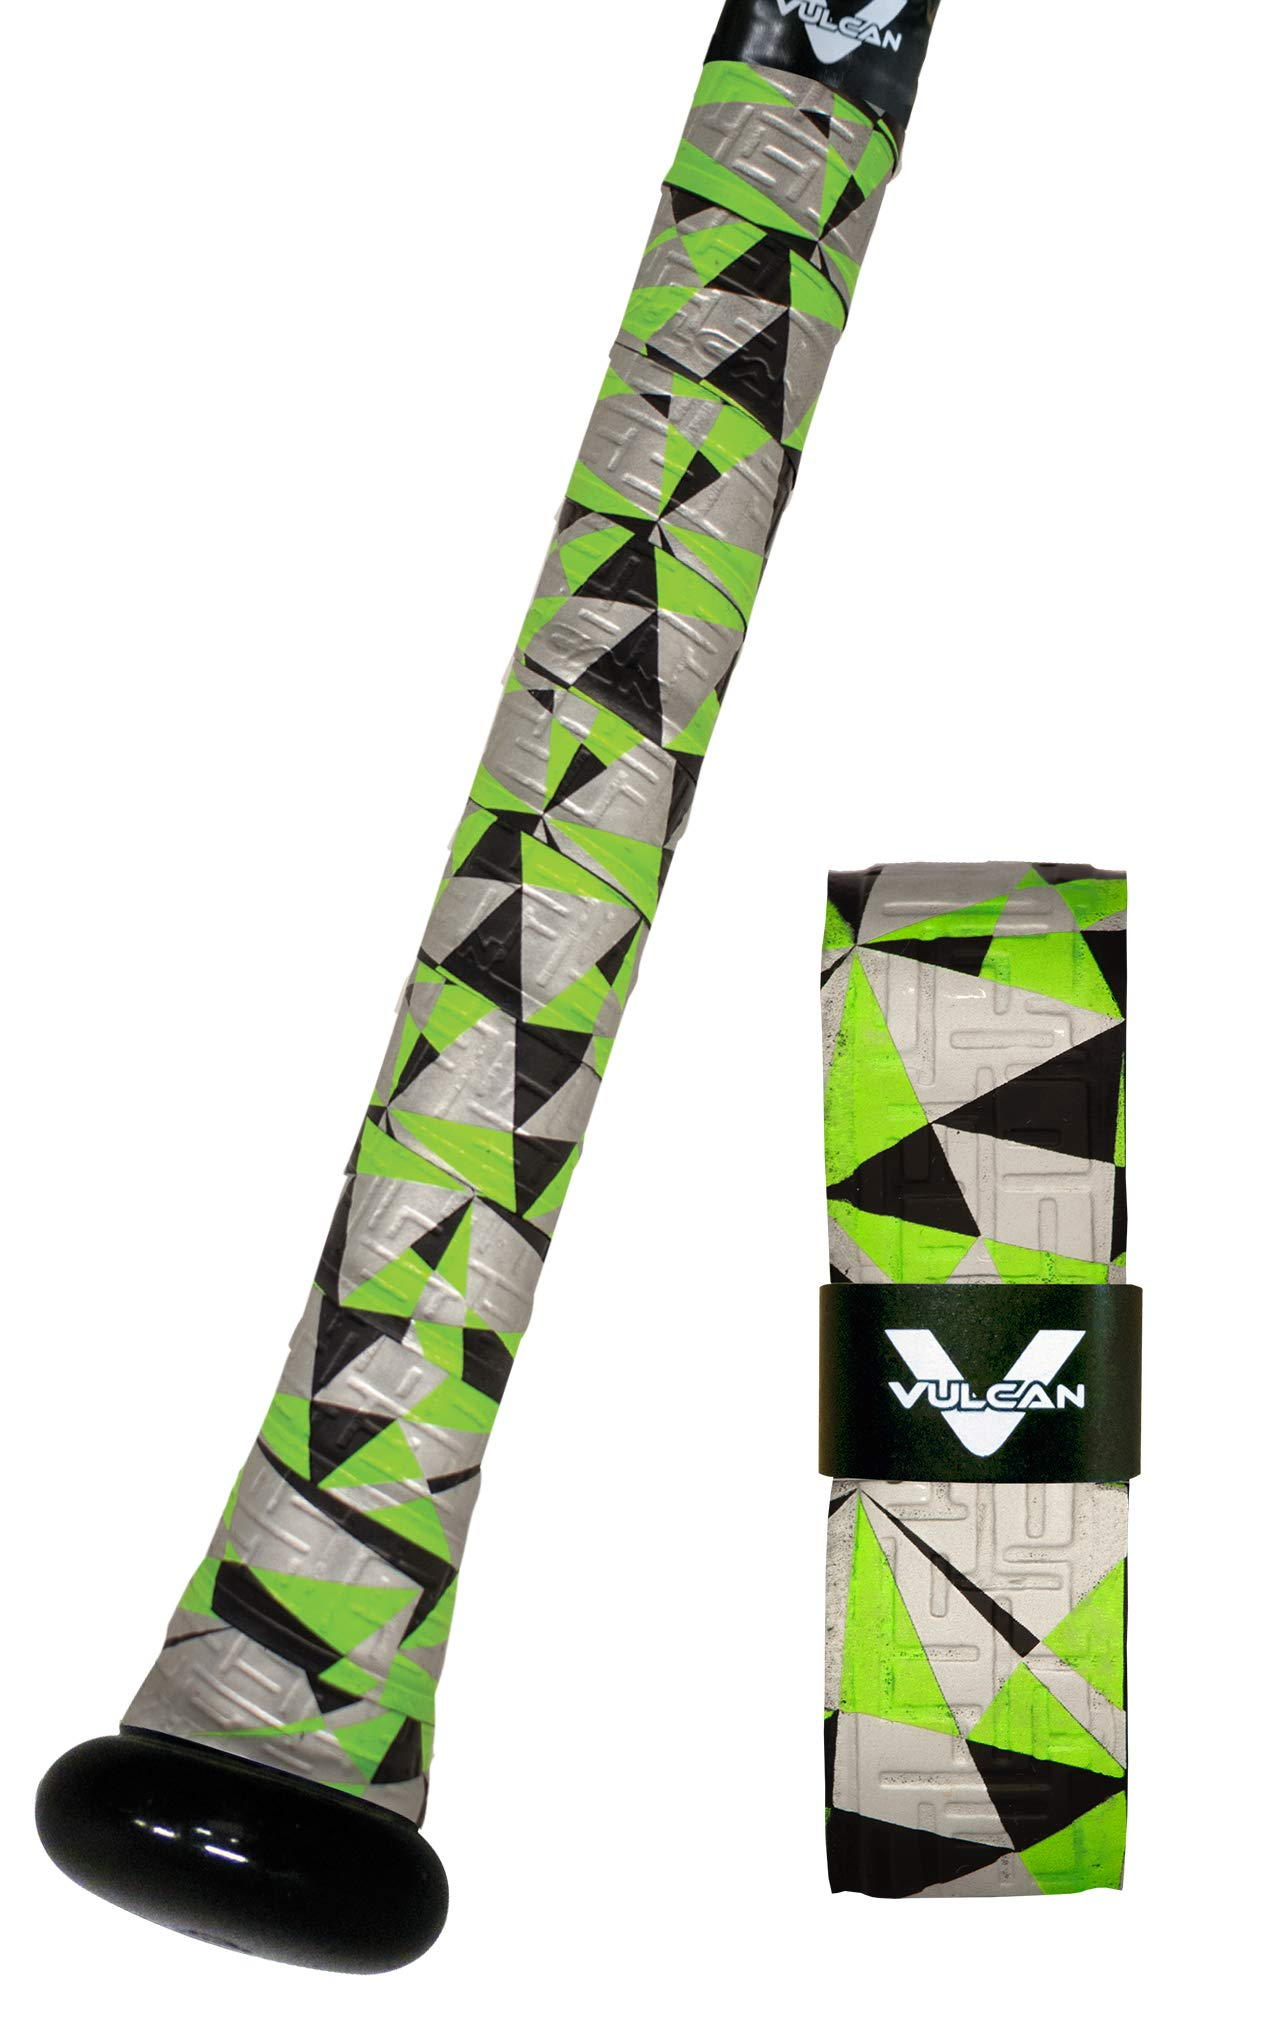 Vulcan 1.75mm Bat Grips/Green Glow by Vulcan